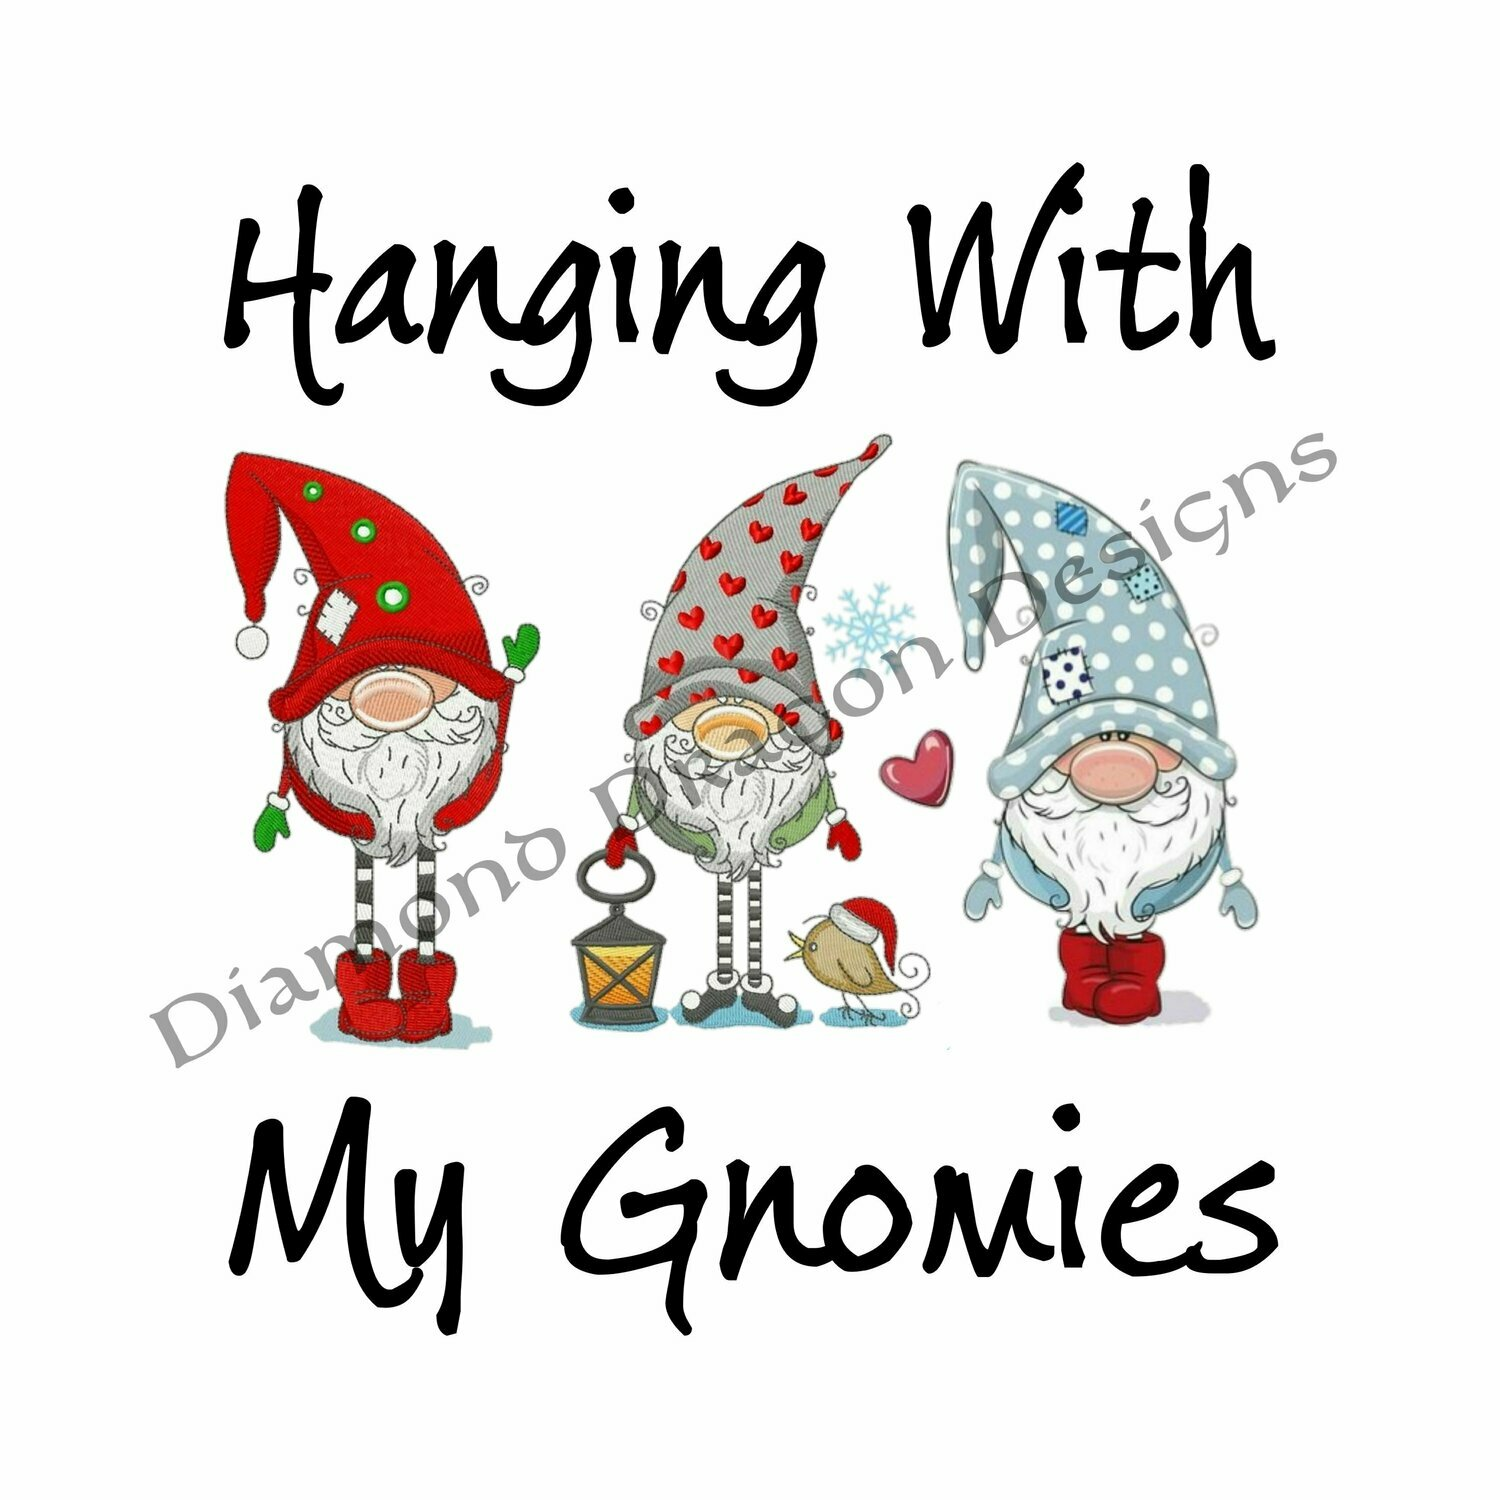 Christmas - Gnomes, Hanging With My Gnomies, Best Friends, 3 Gnomes, Waterslide